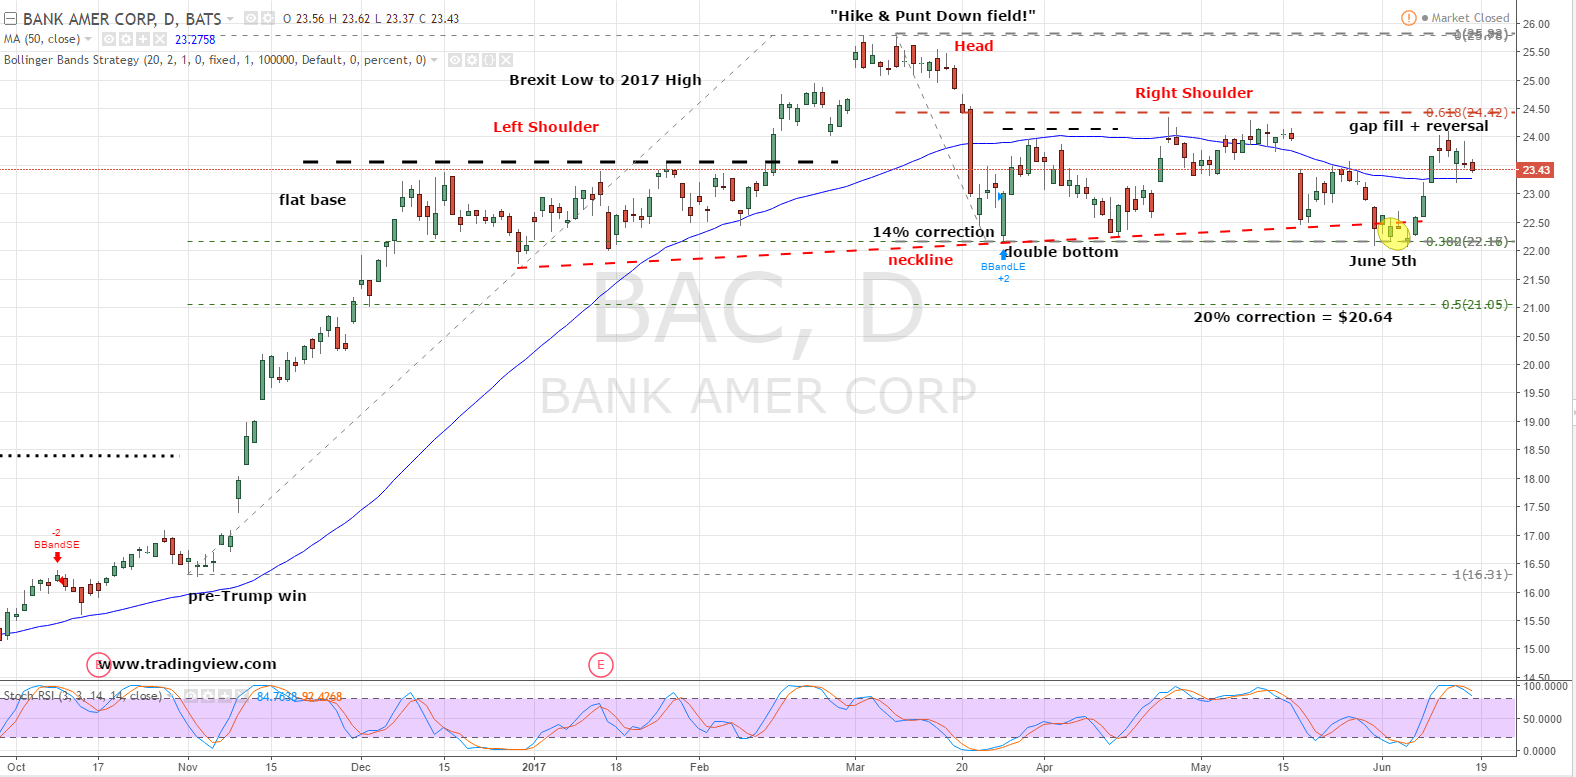 Buy bank of america corp bac stock for a nearly 20 discount